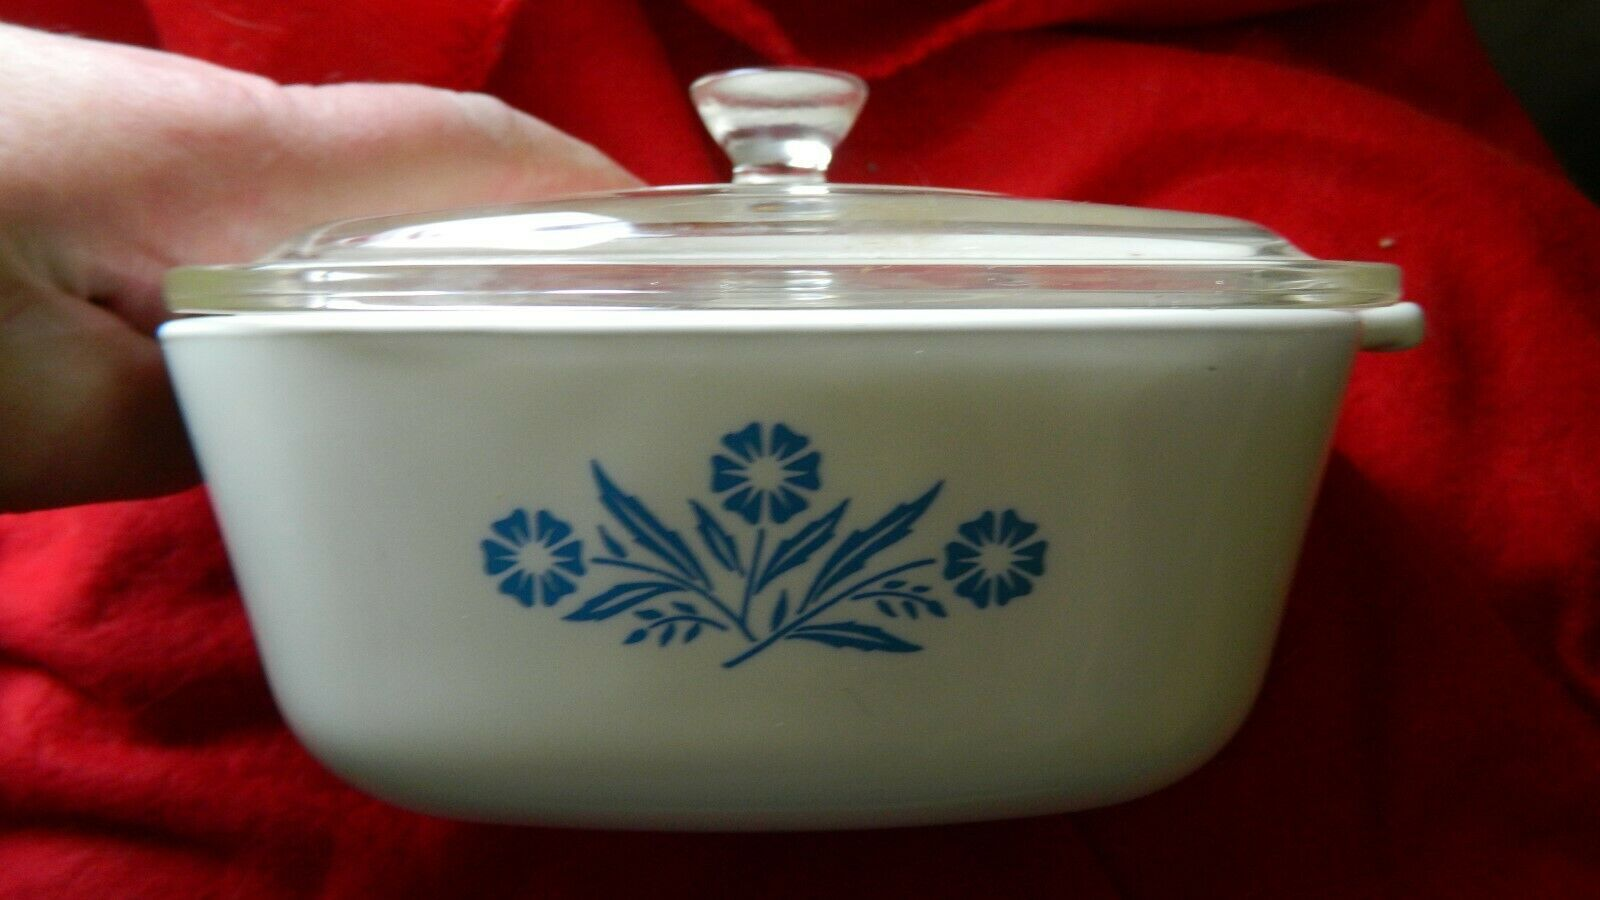 Primary image for CORNING WARE PYROCERAM BLUE CORNFLOWER P-1&1/2B CASSEROLE DISH 1.5qt +LID